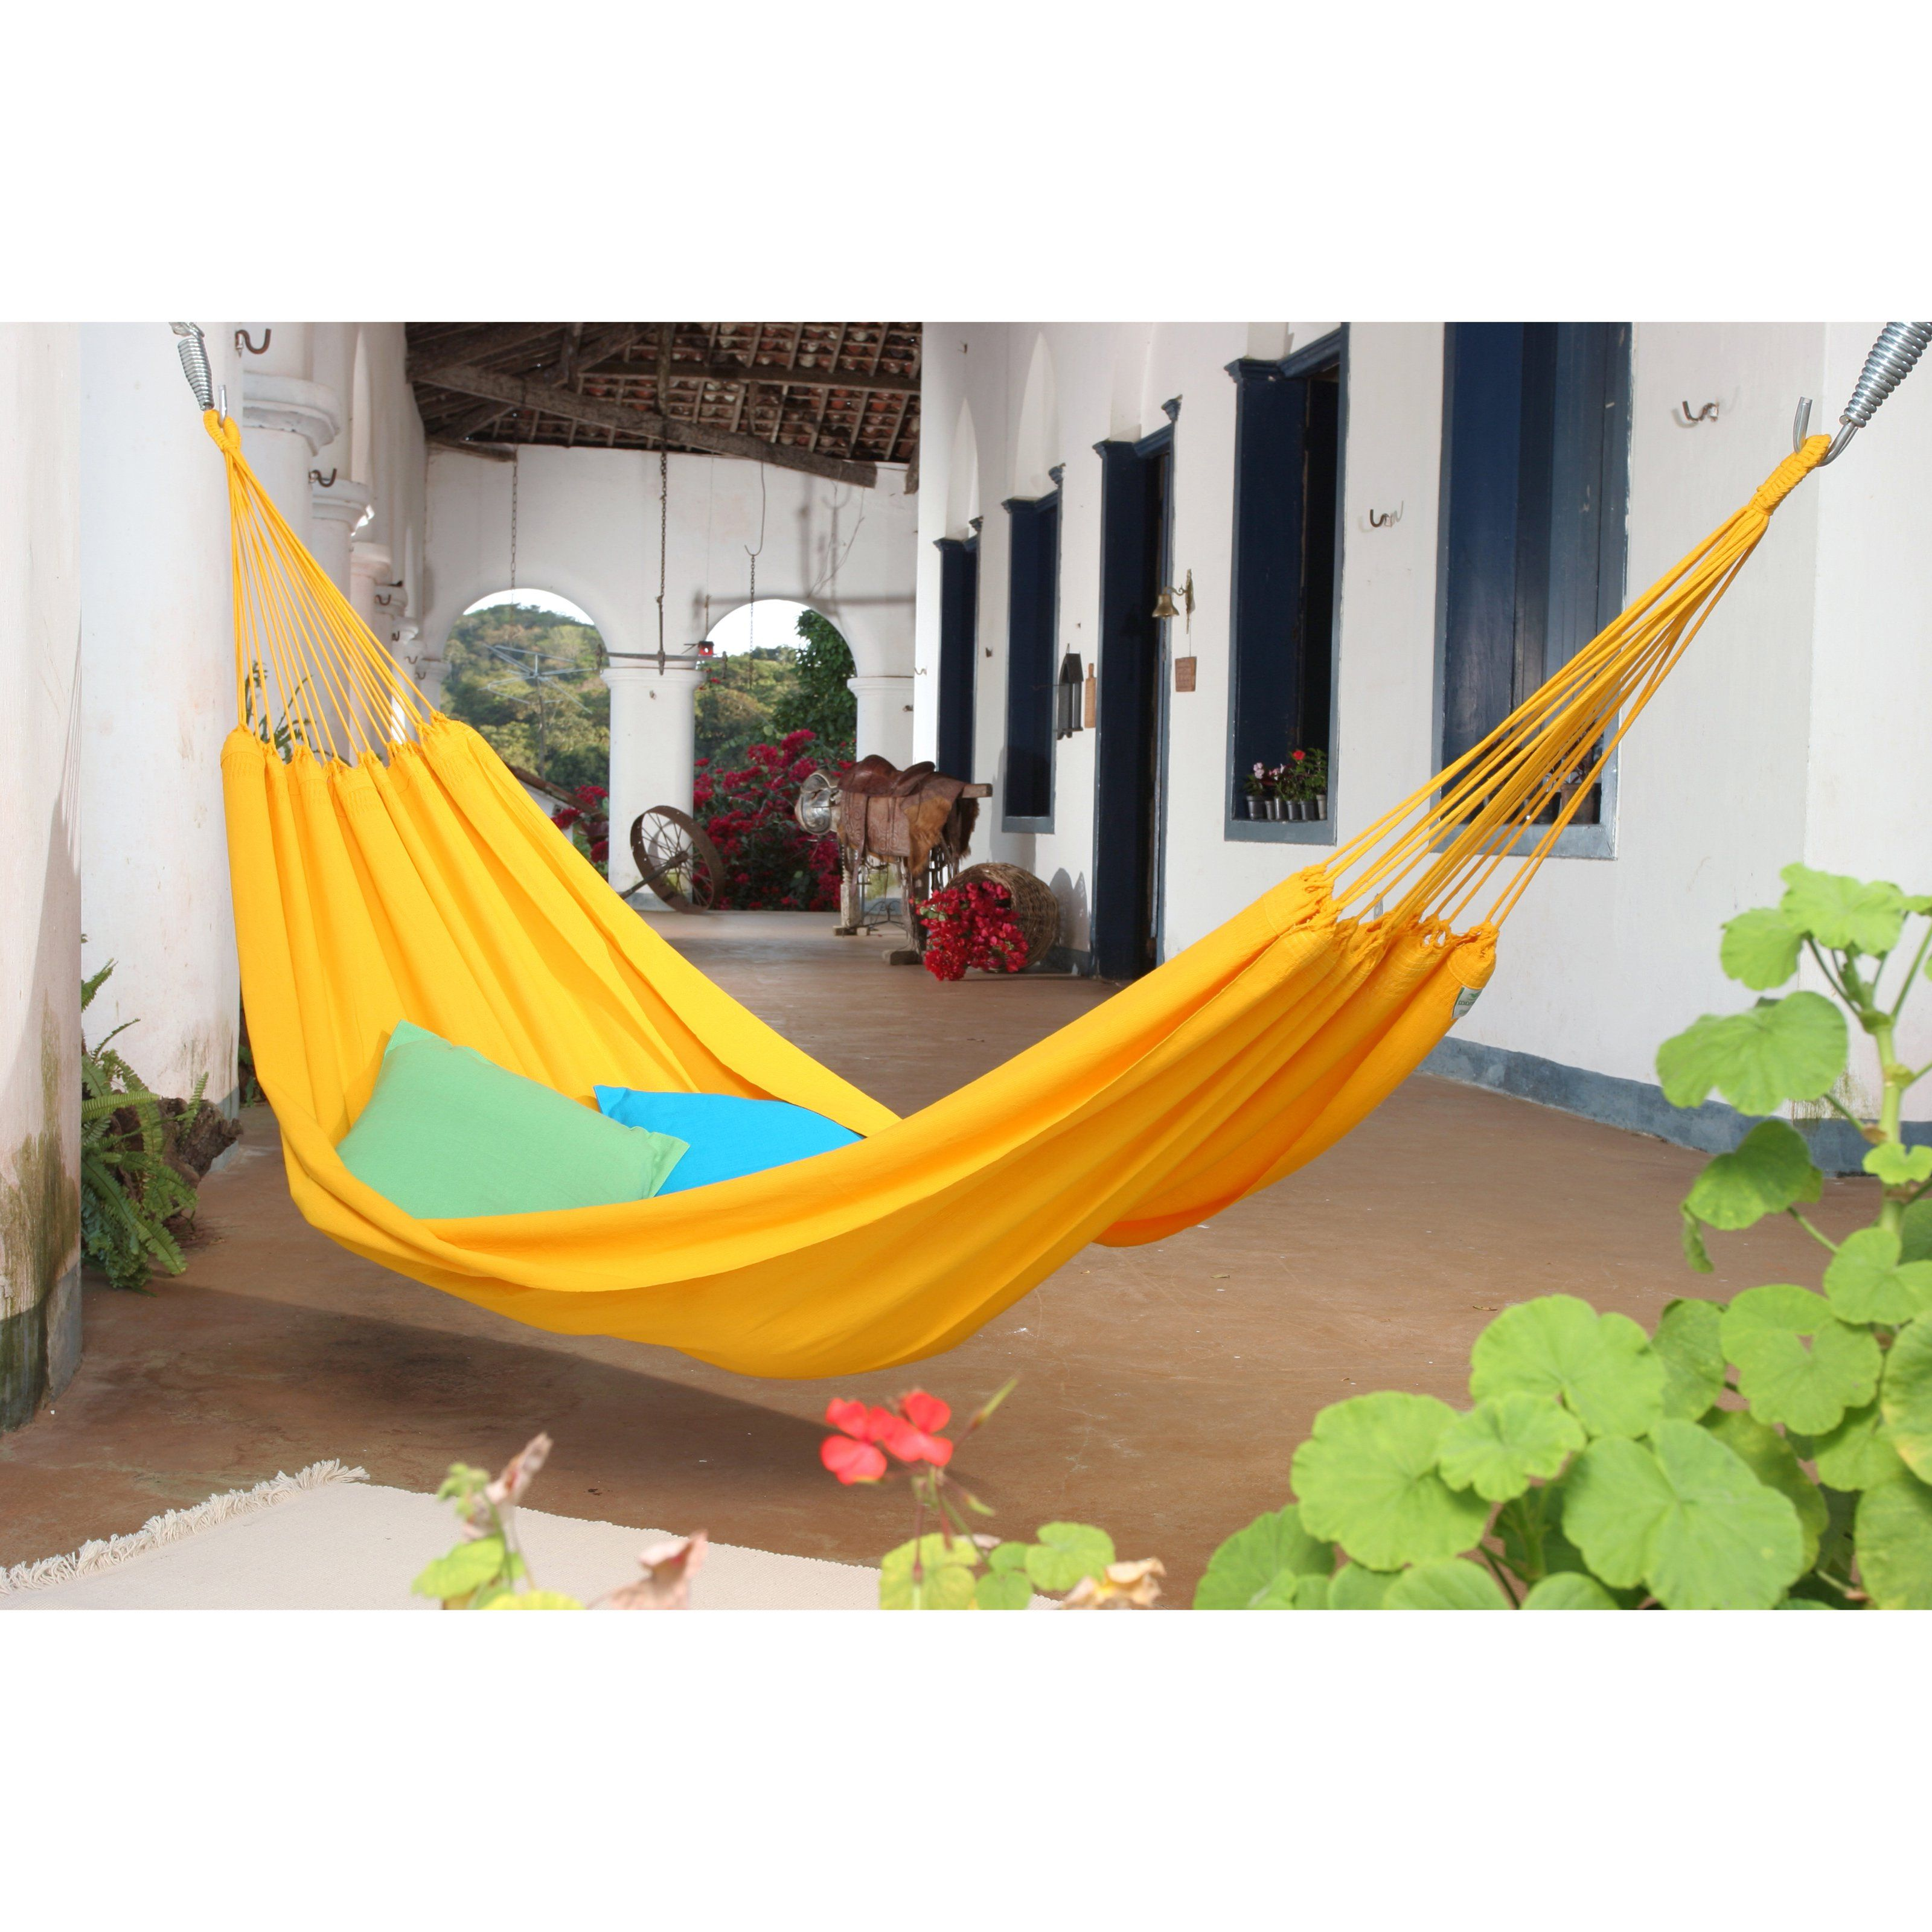 single colombian ft in ftlr blue space hsgl xx your hammocks dfohome small hammock for